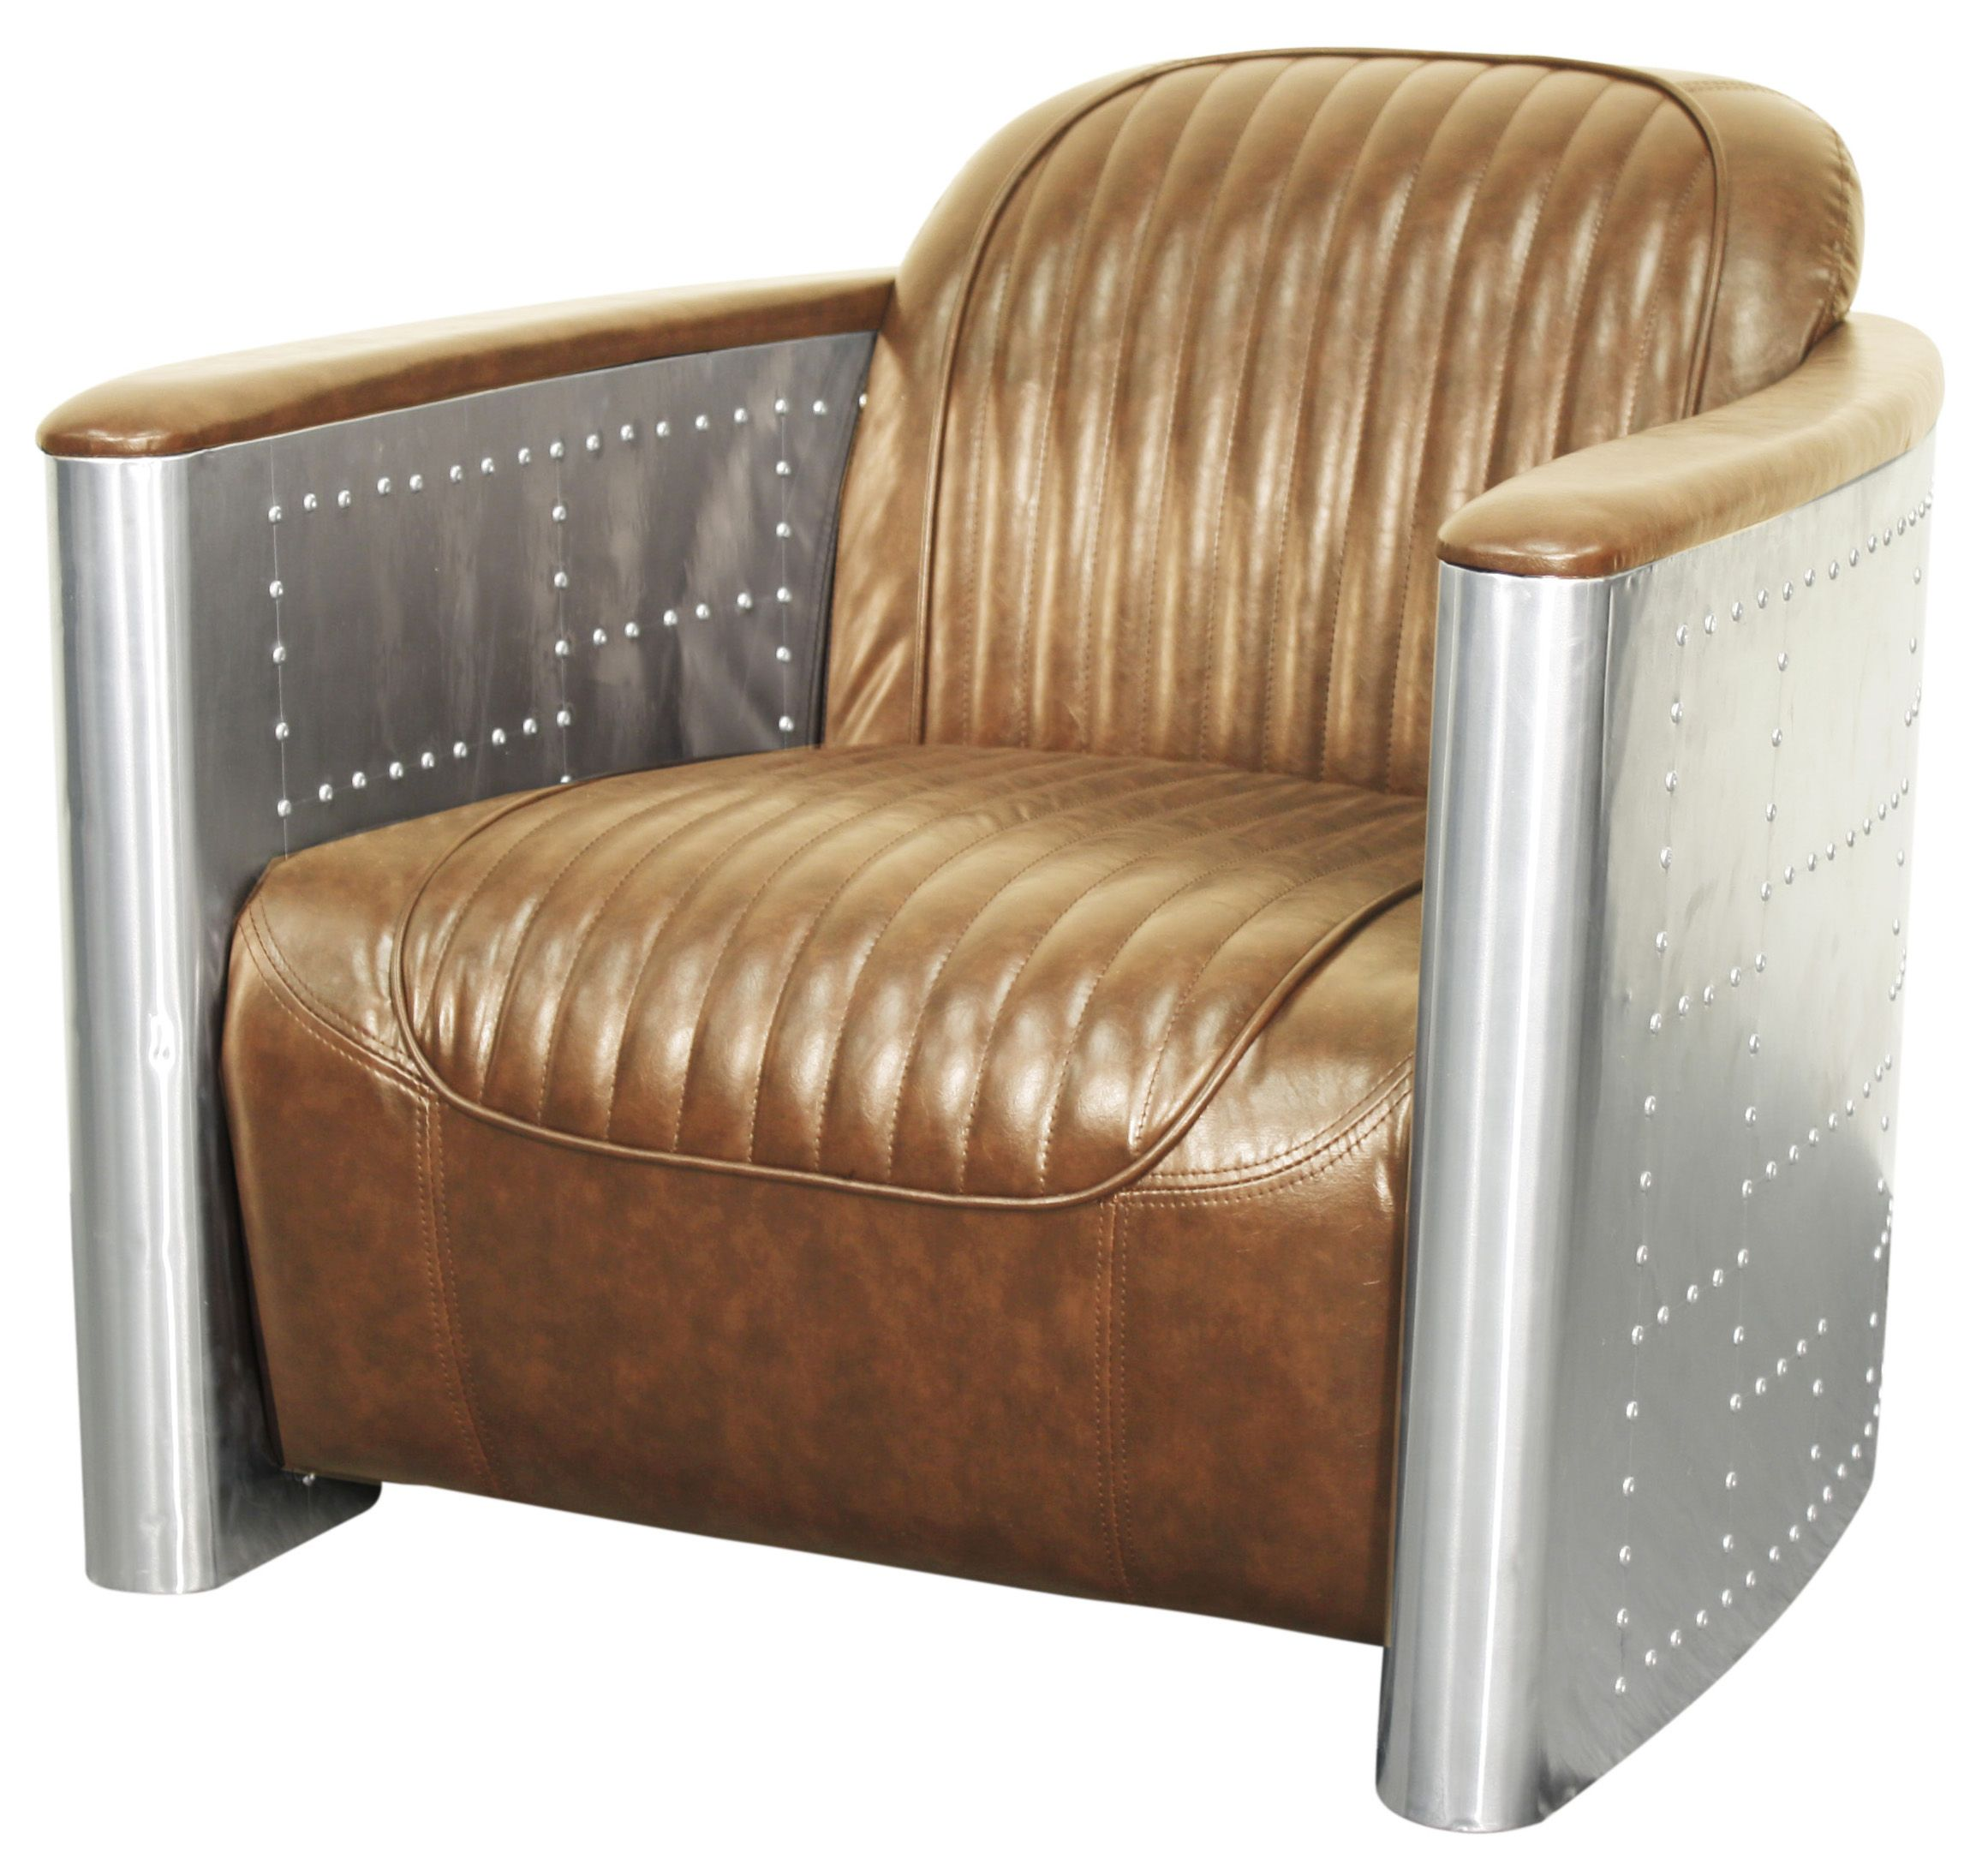 Easton PU Accent Chair in Aluminum Frame in Distressed Caramel